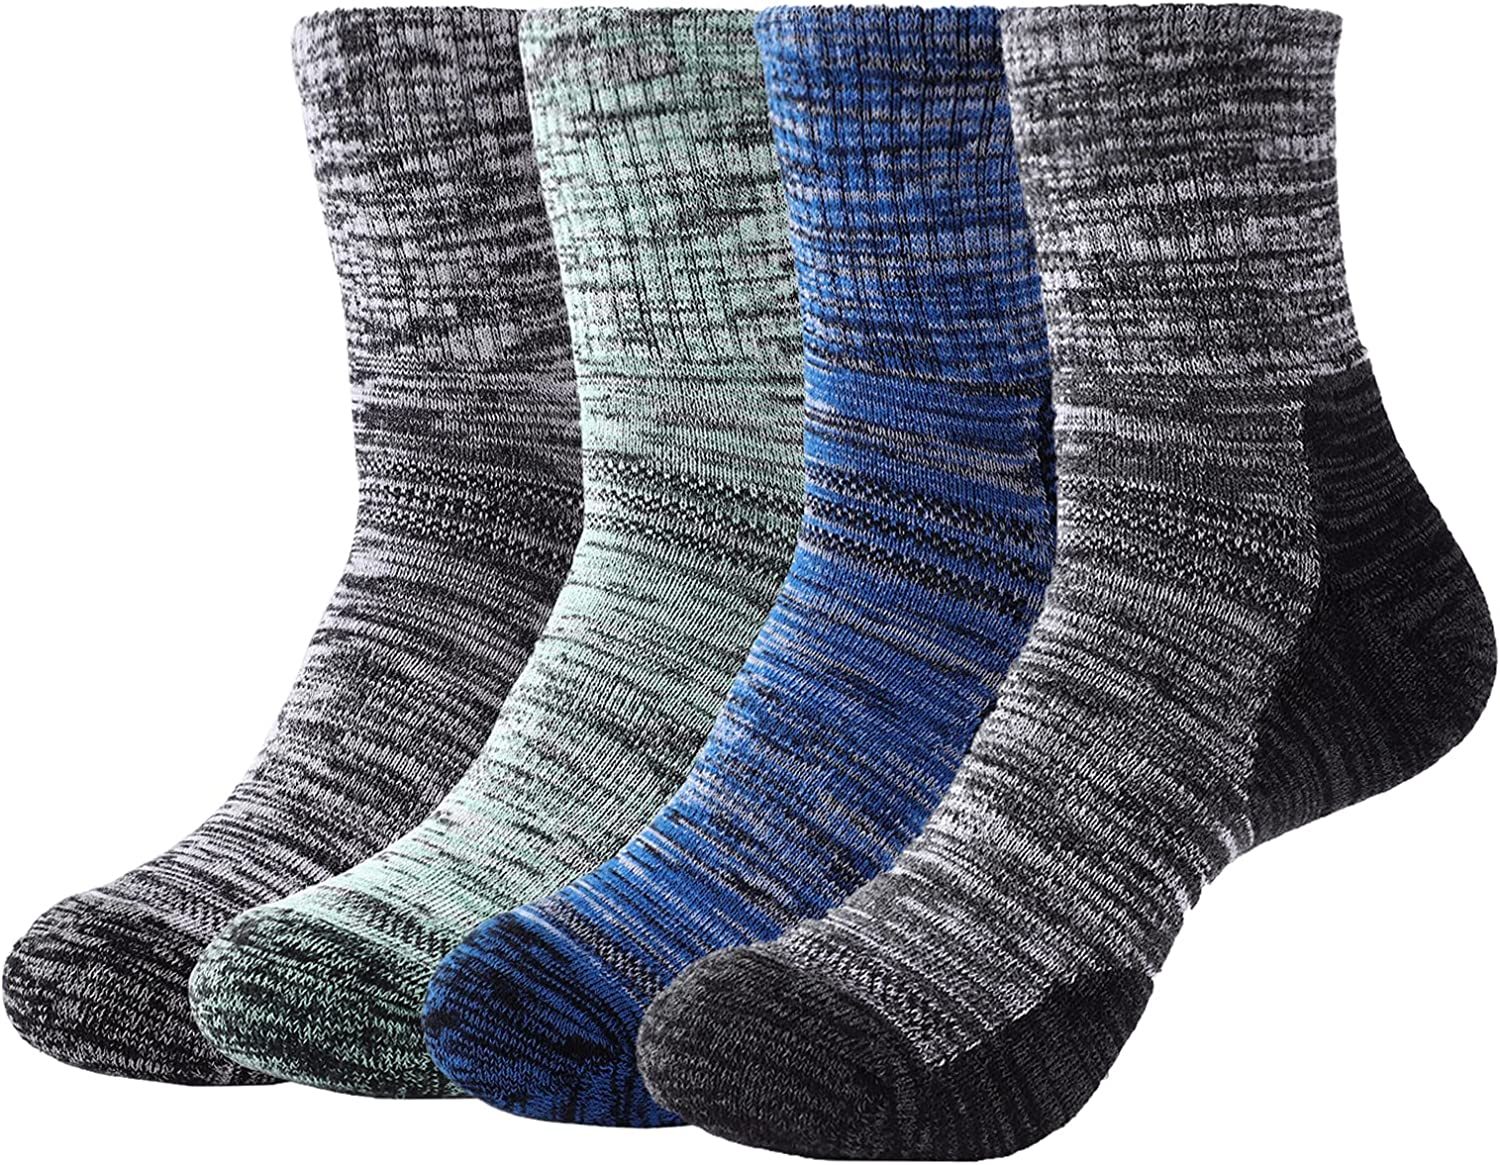 4 Pairs Men's Walking Hiking W Multi Max 58% OFF Manufacturer direct delivery Socks Moisture Performance